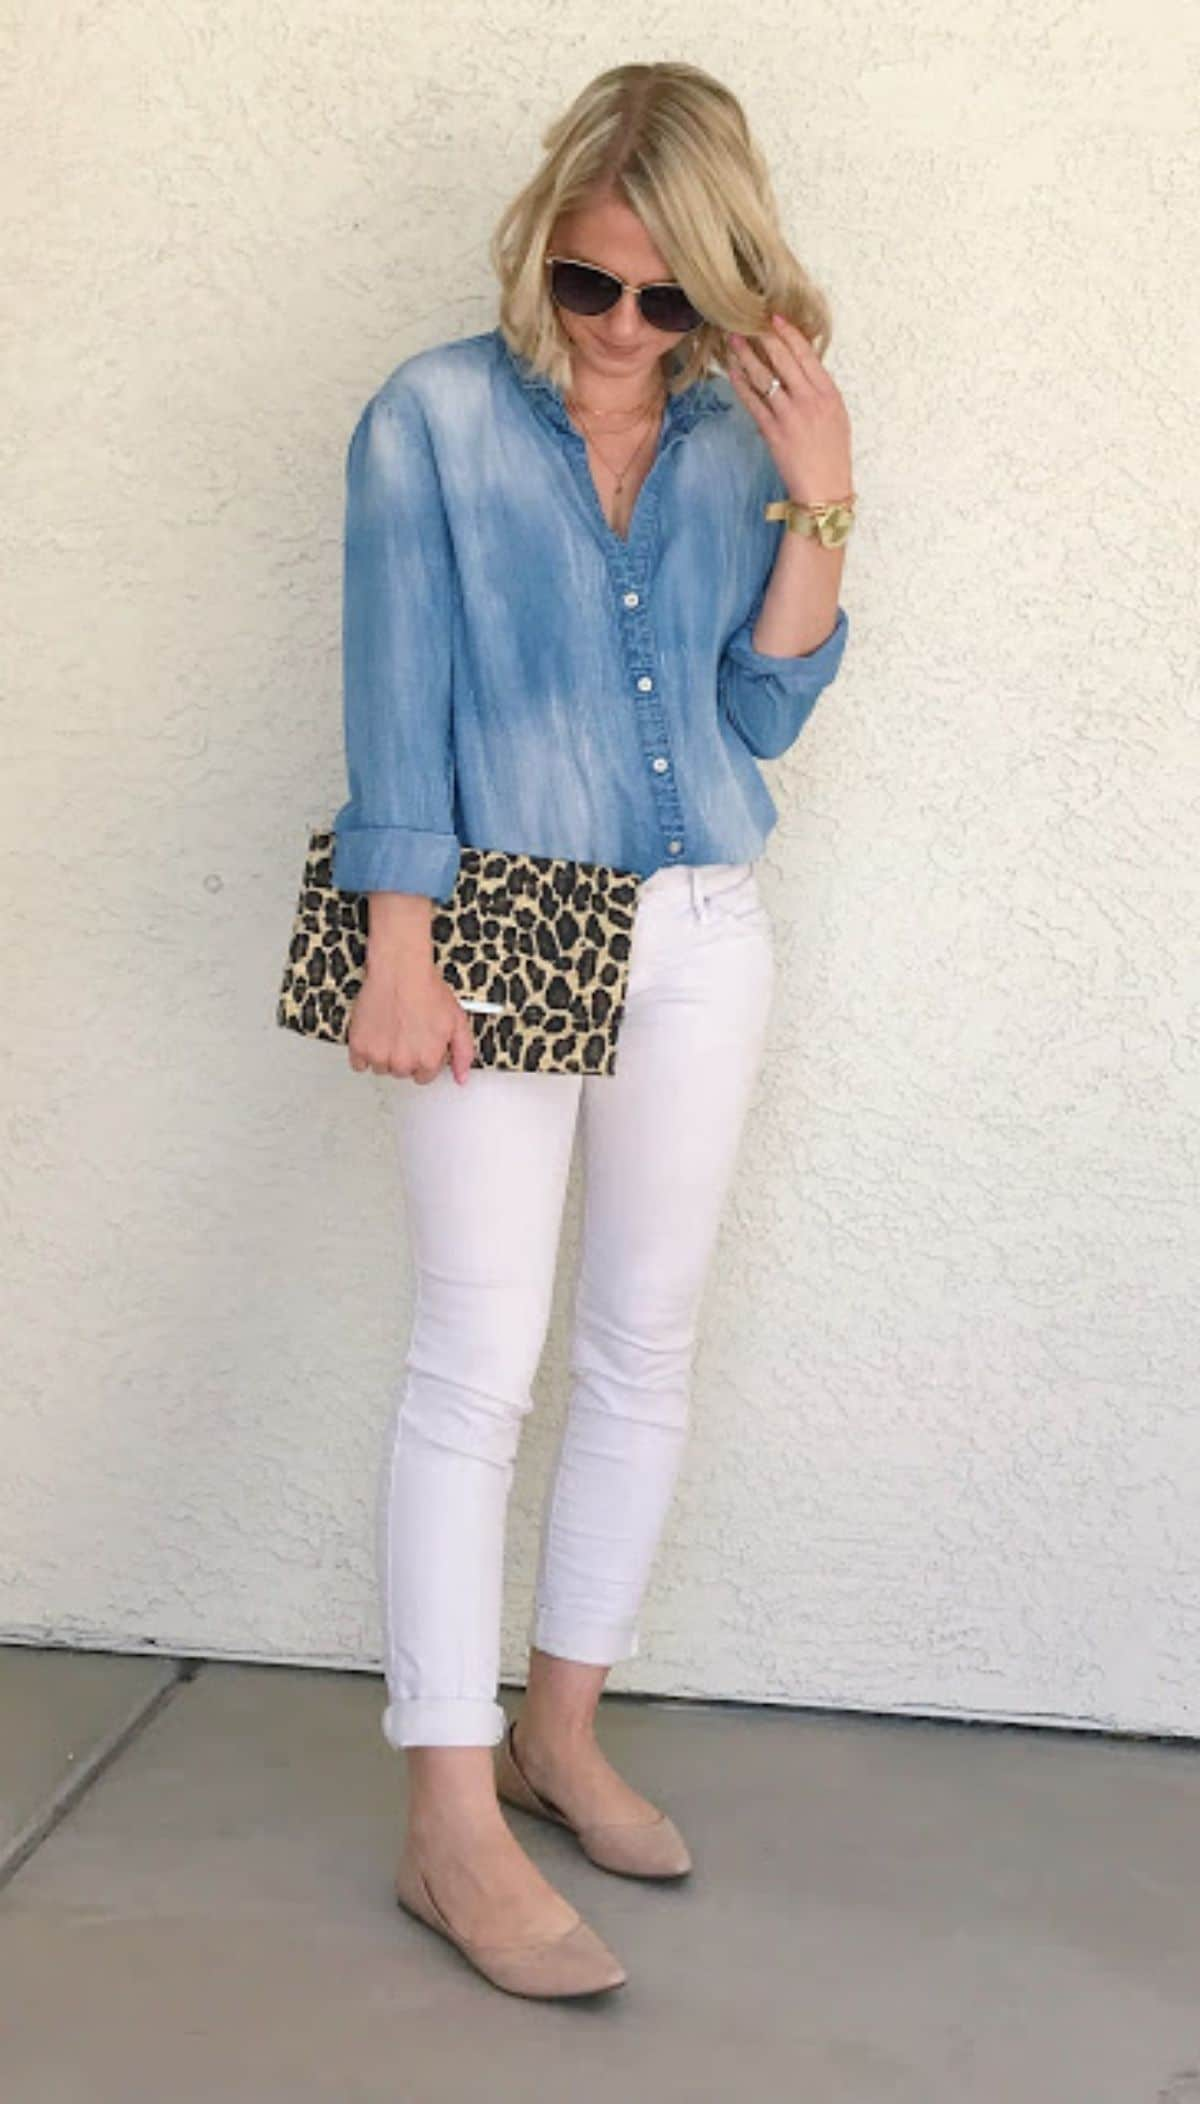 tucked chambray shirt into white jeans